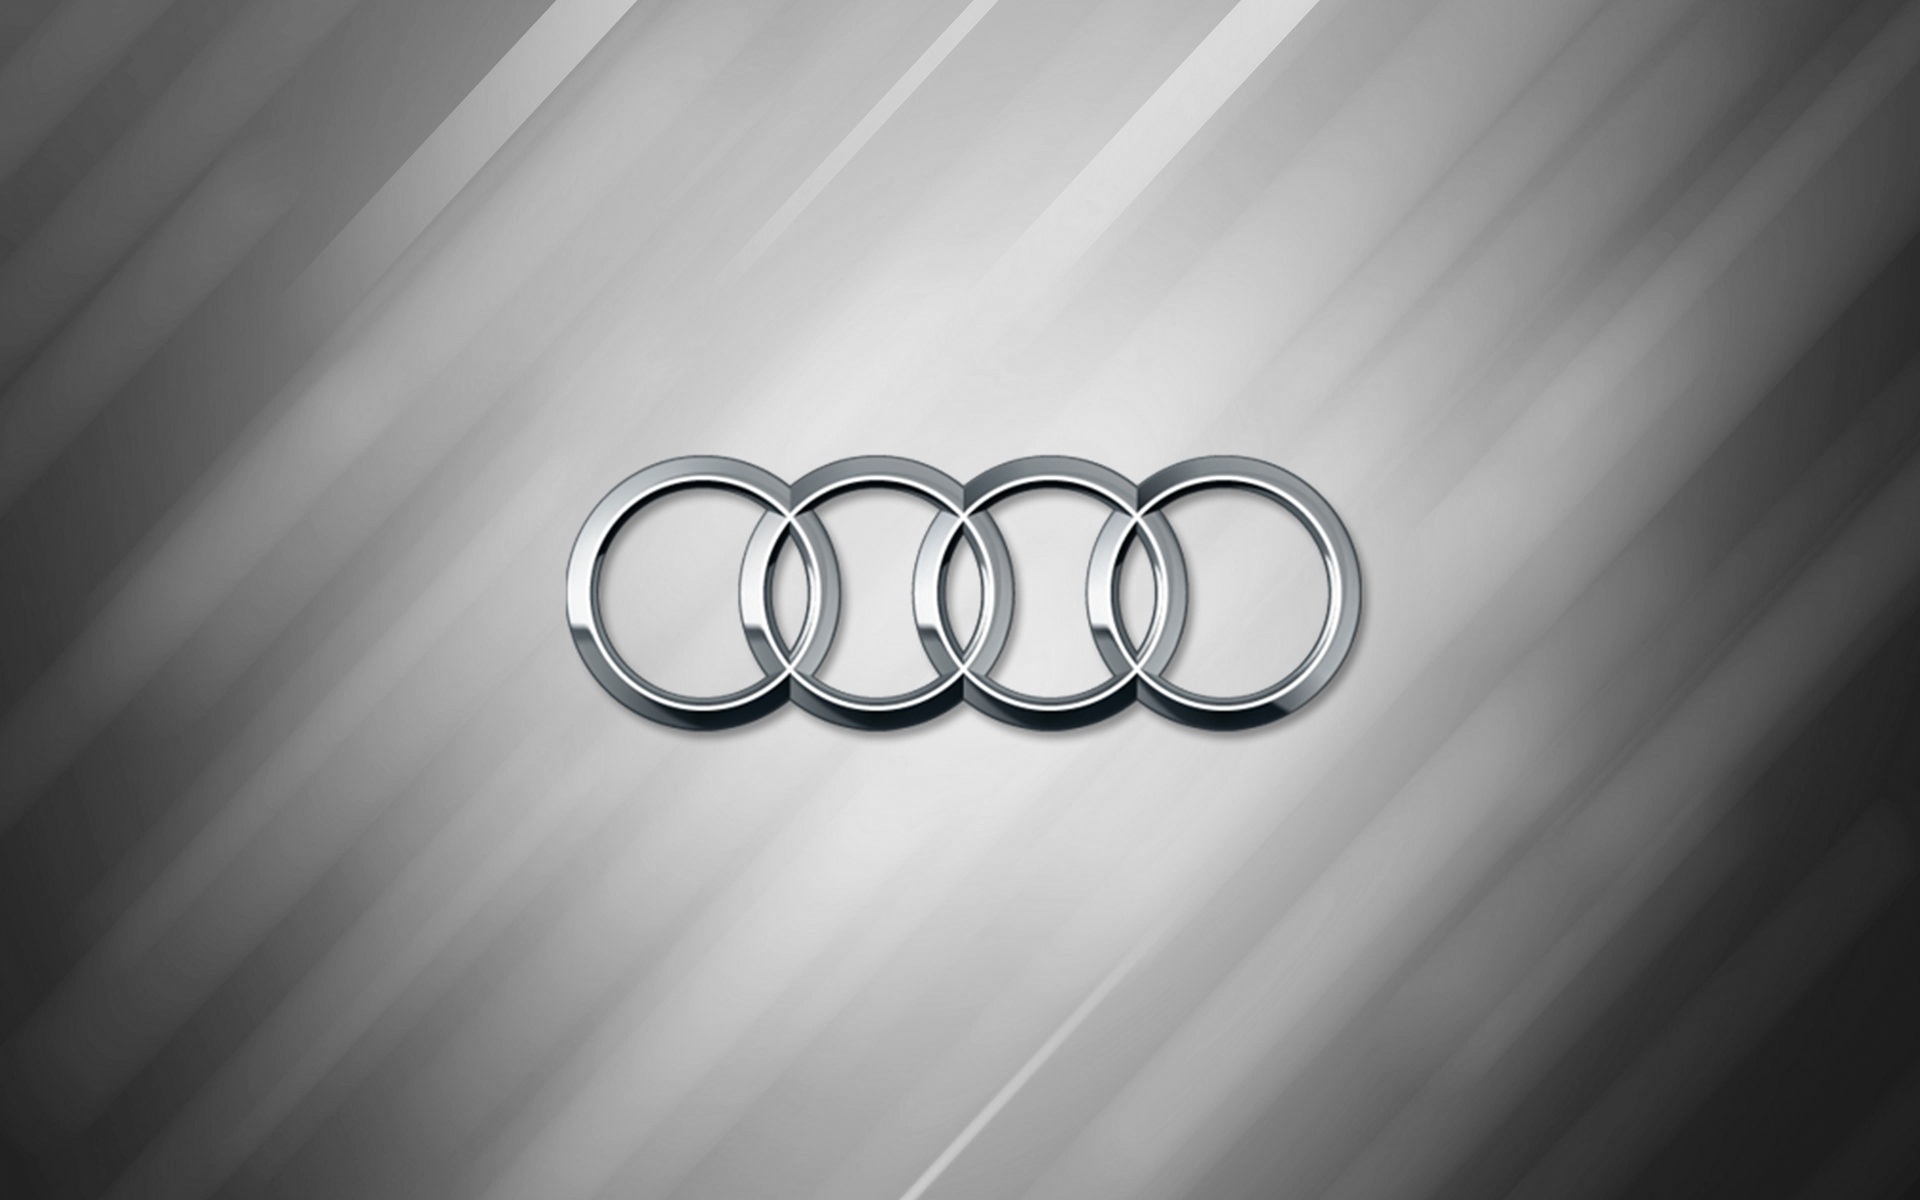 Audi-Logo-Desktop-wallpaper-wpc5802352